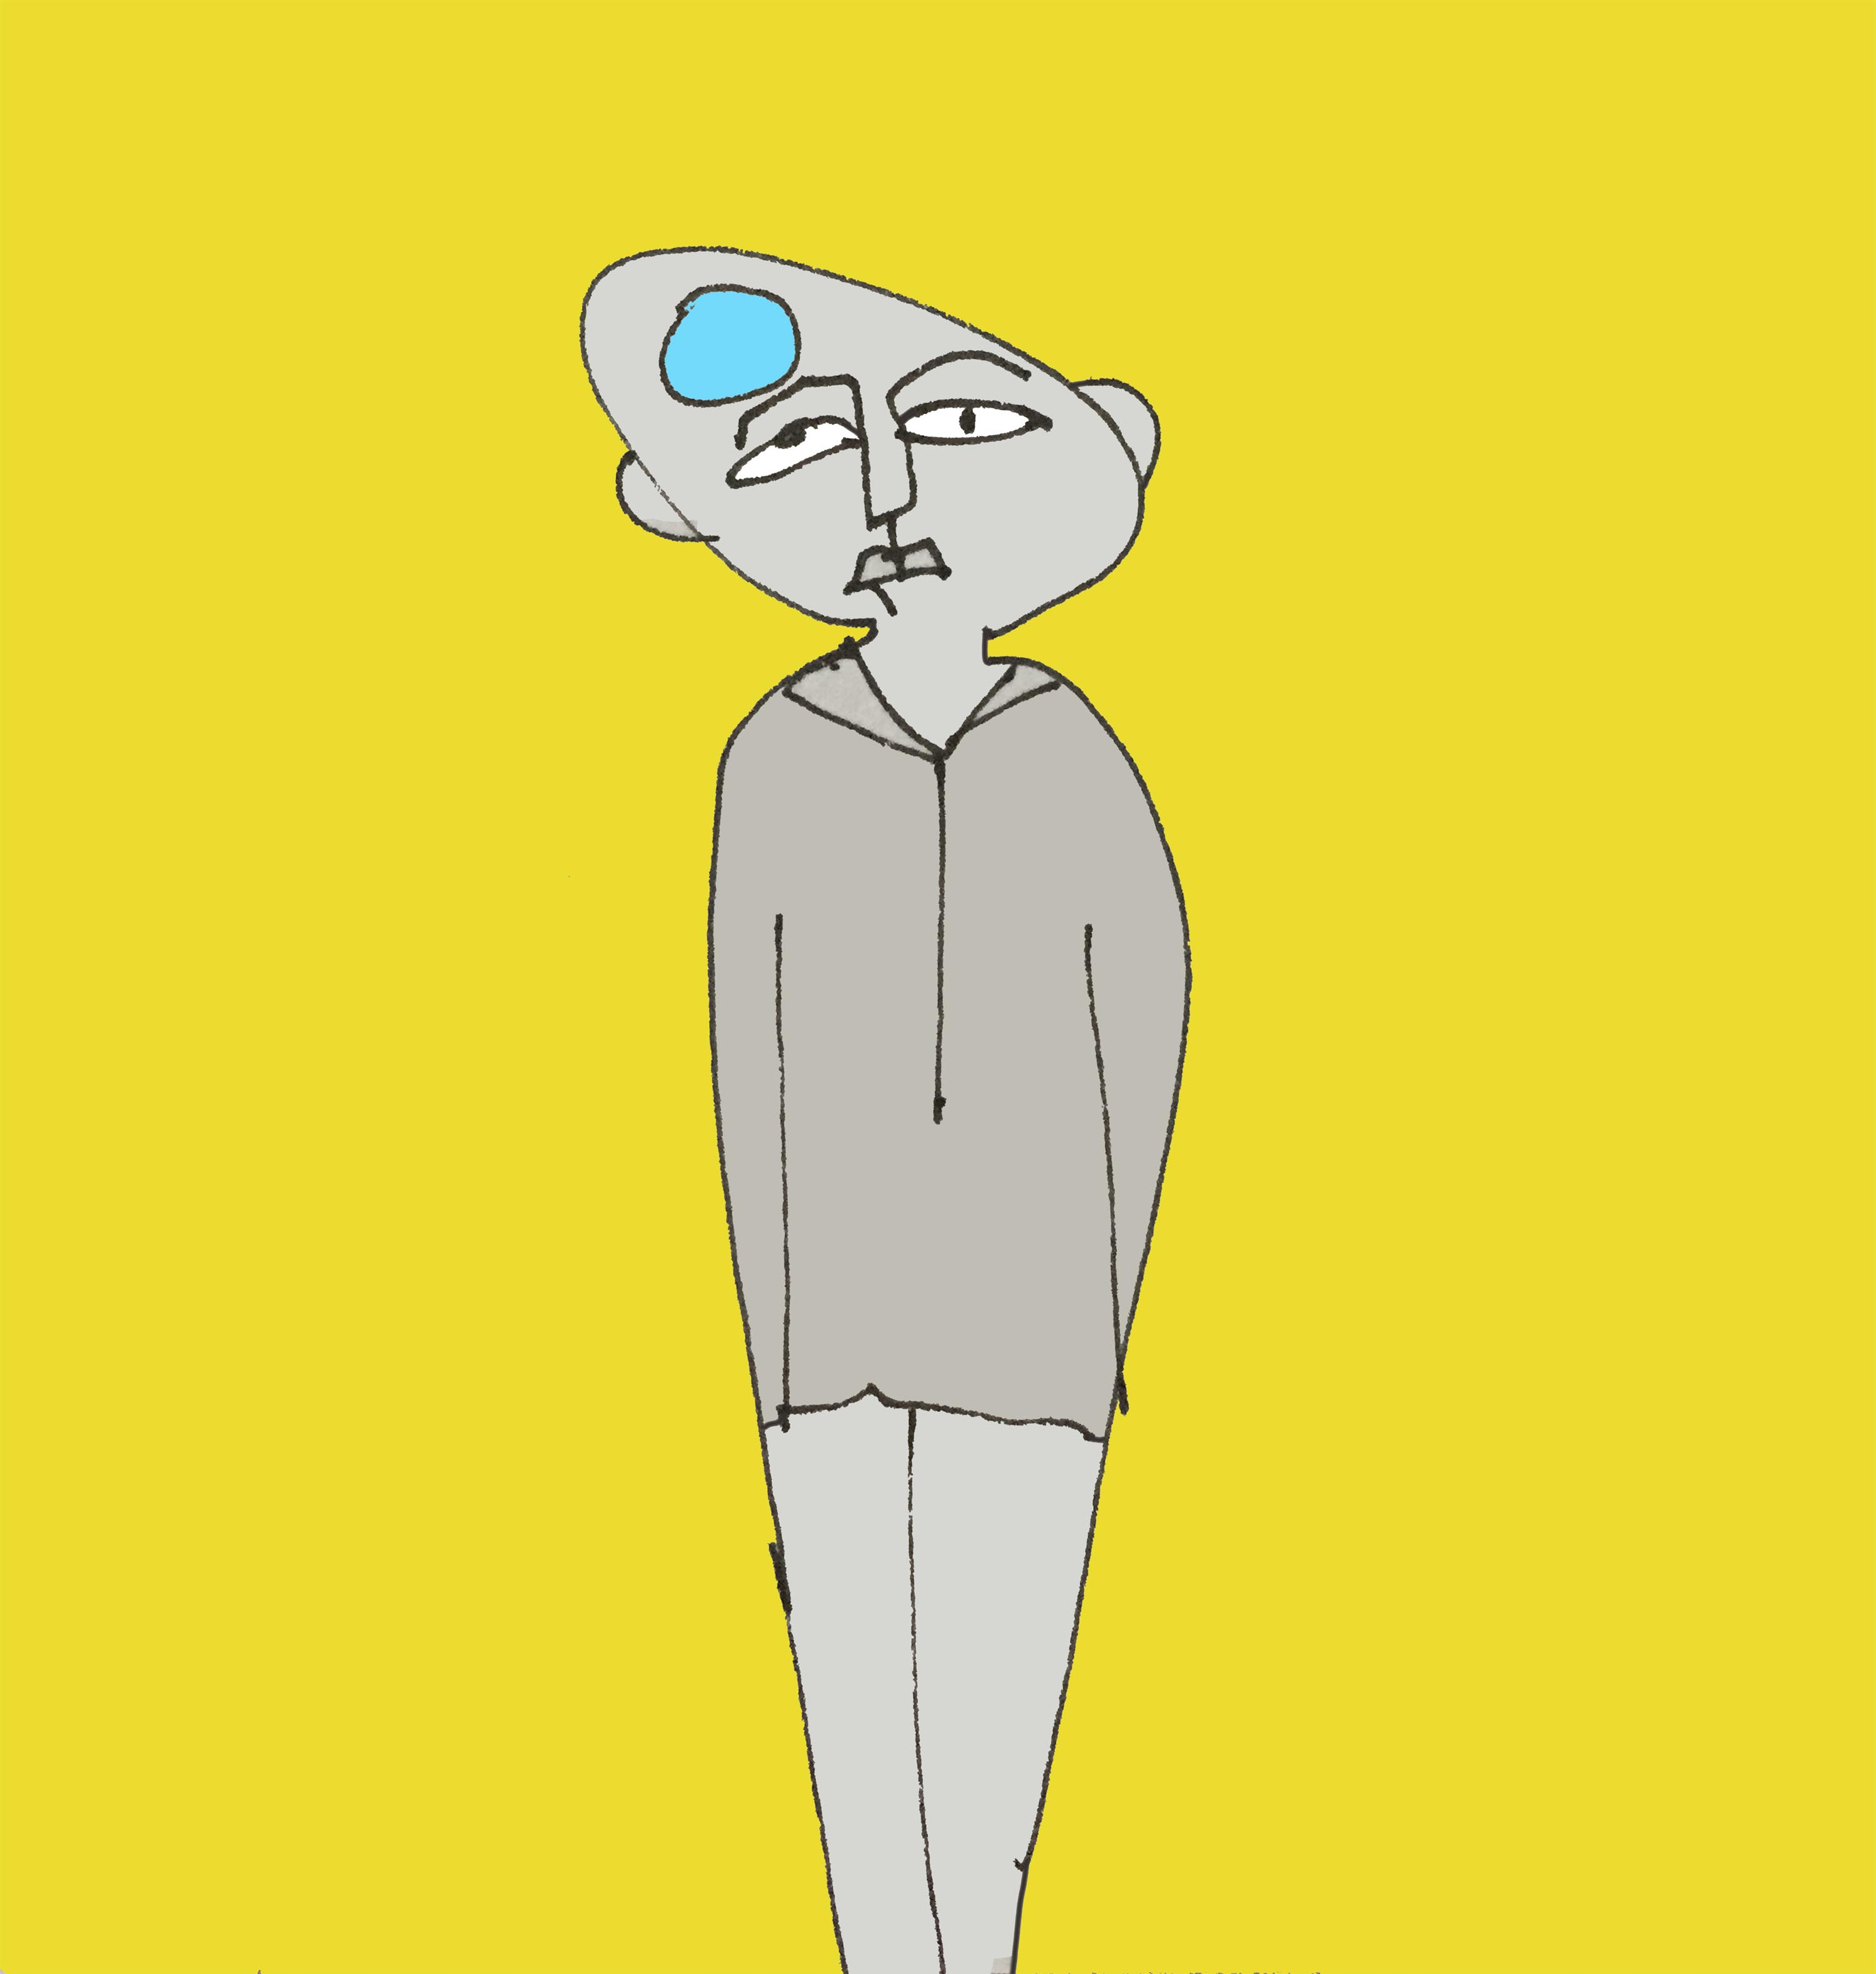 art every day number 183 big idea man on yellow